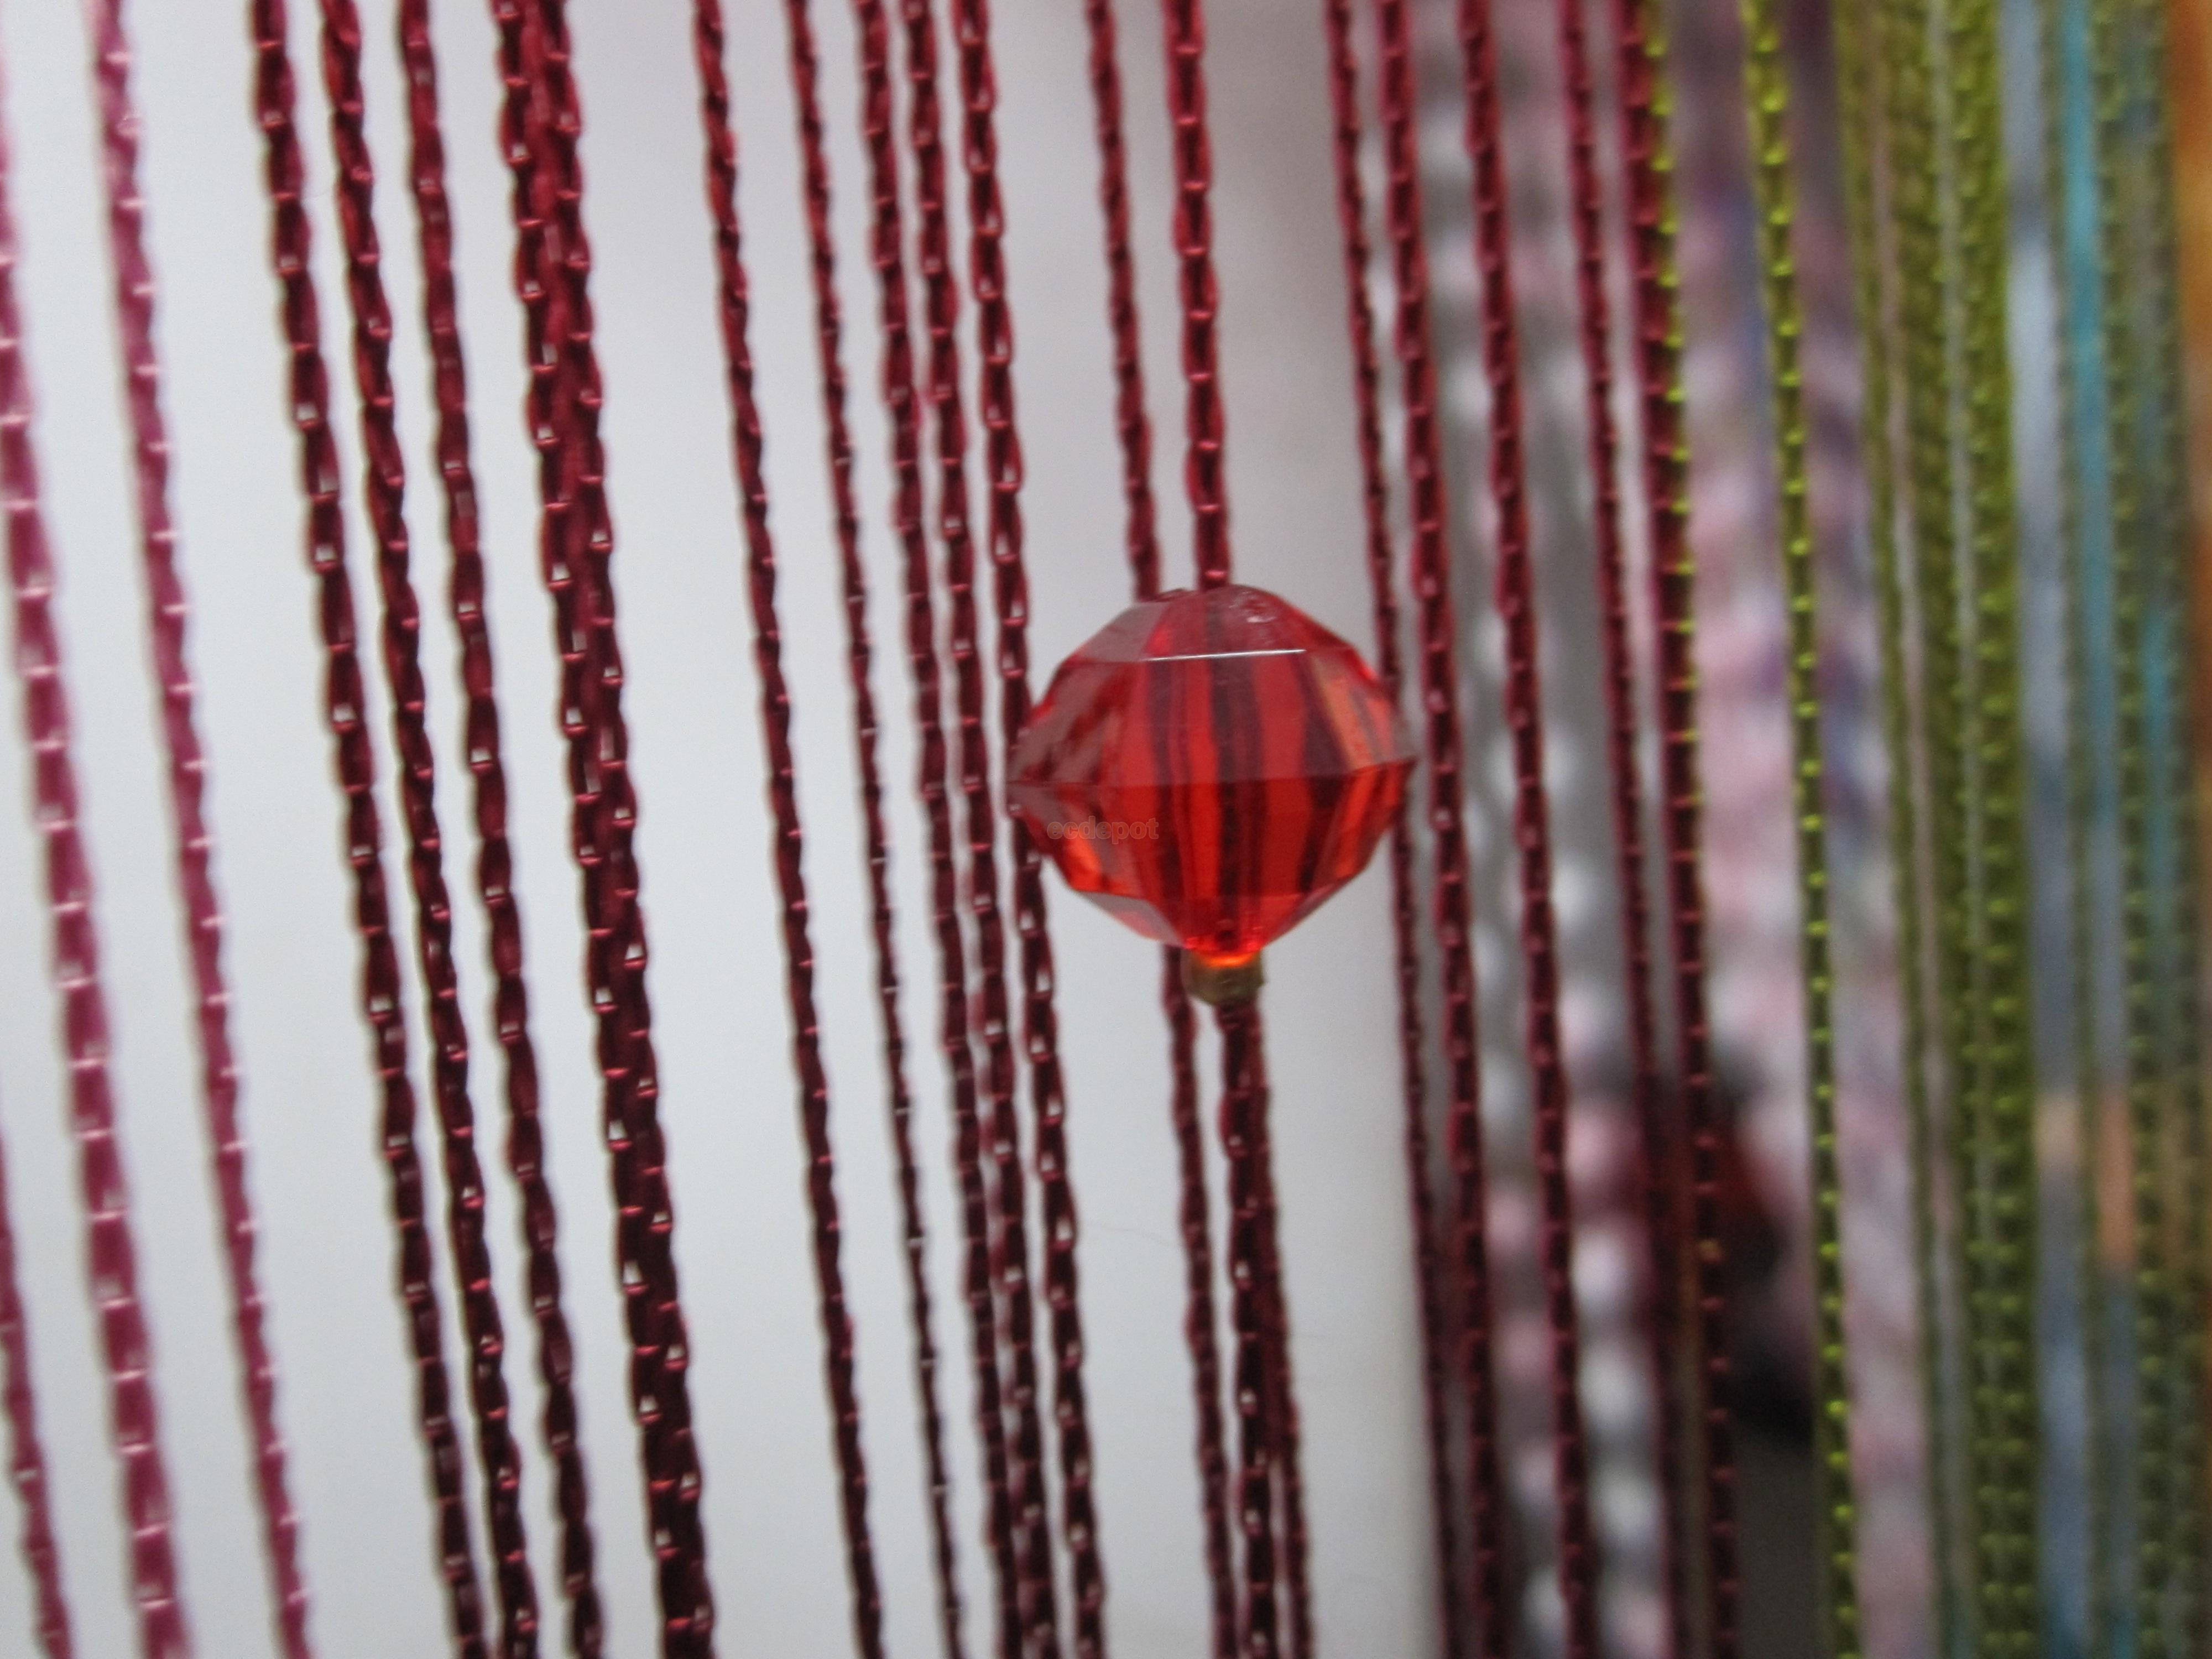 Bead curtain crystal partition curtain finished product crystal bead - Crystal Beads Yarn Dyed Curtain Window Door Drape Passage Divider Decor Wine Red China